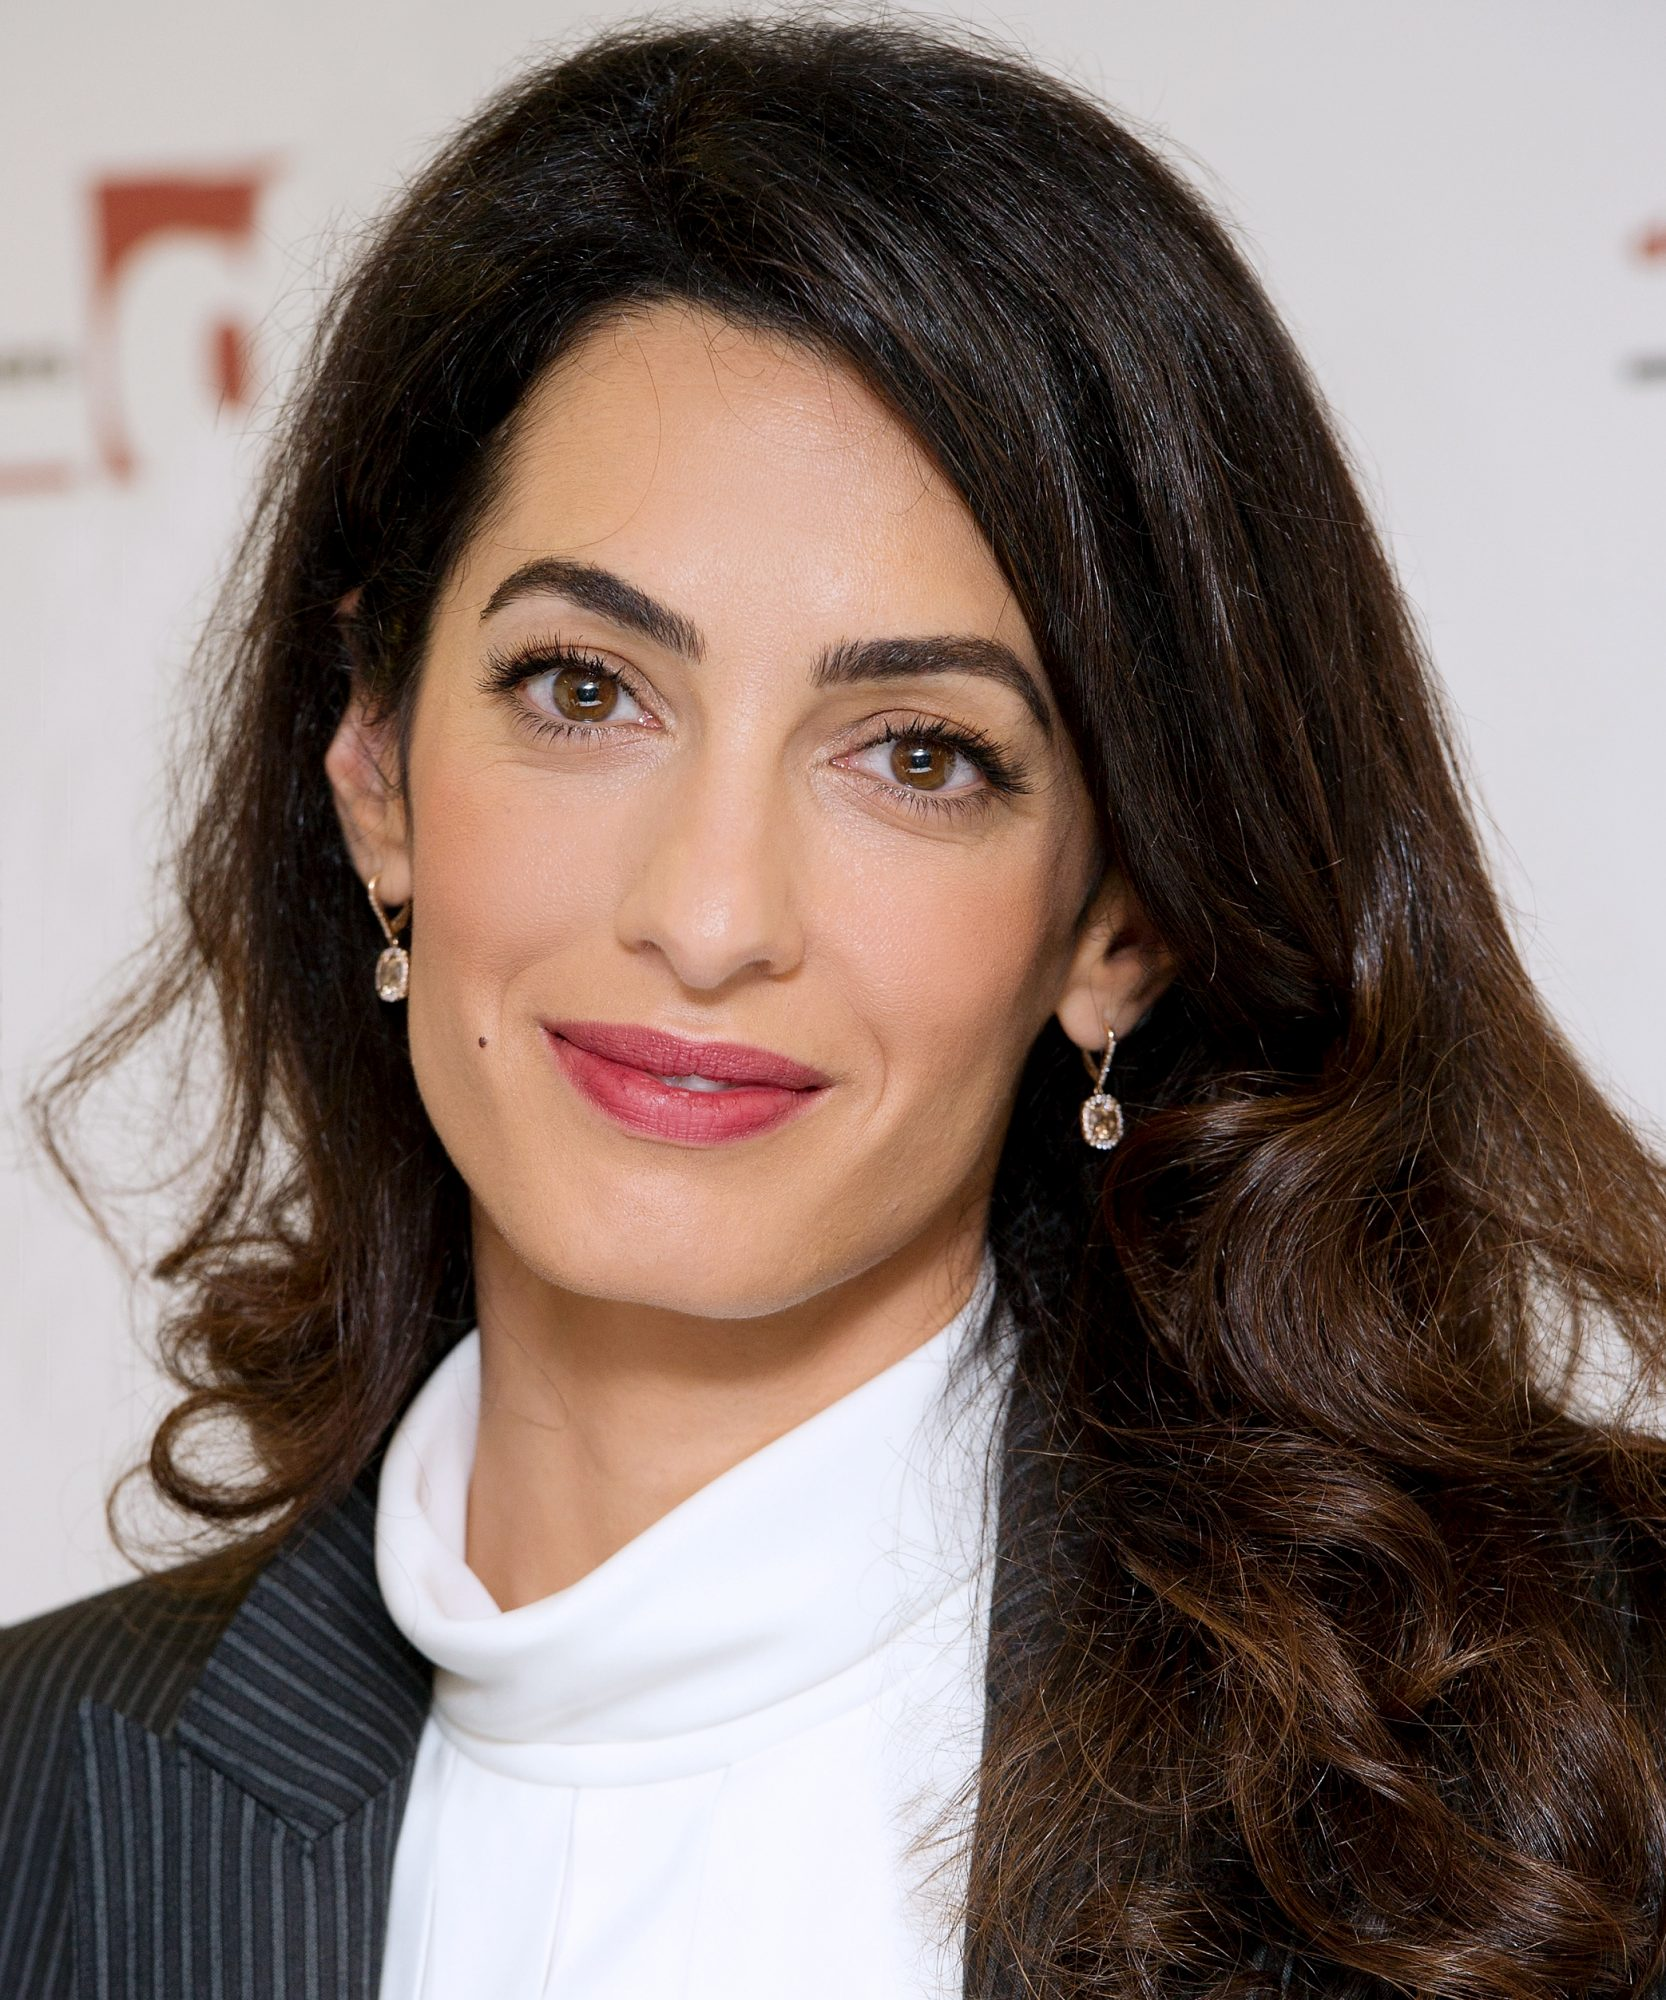 This Is the Salon Where Amal Clooney Gets Her Hair Cut